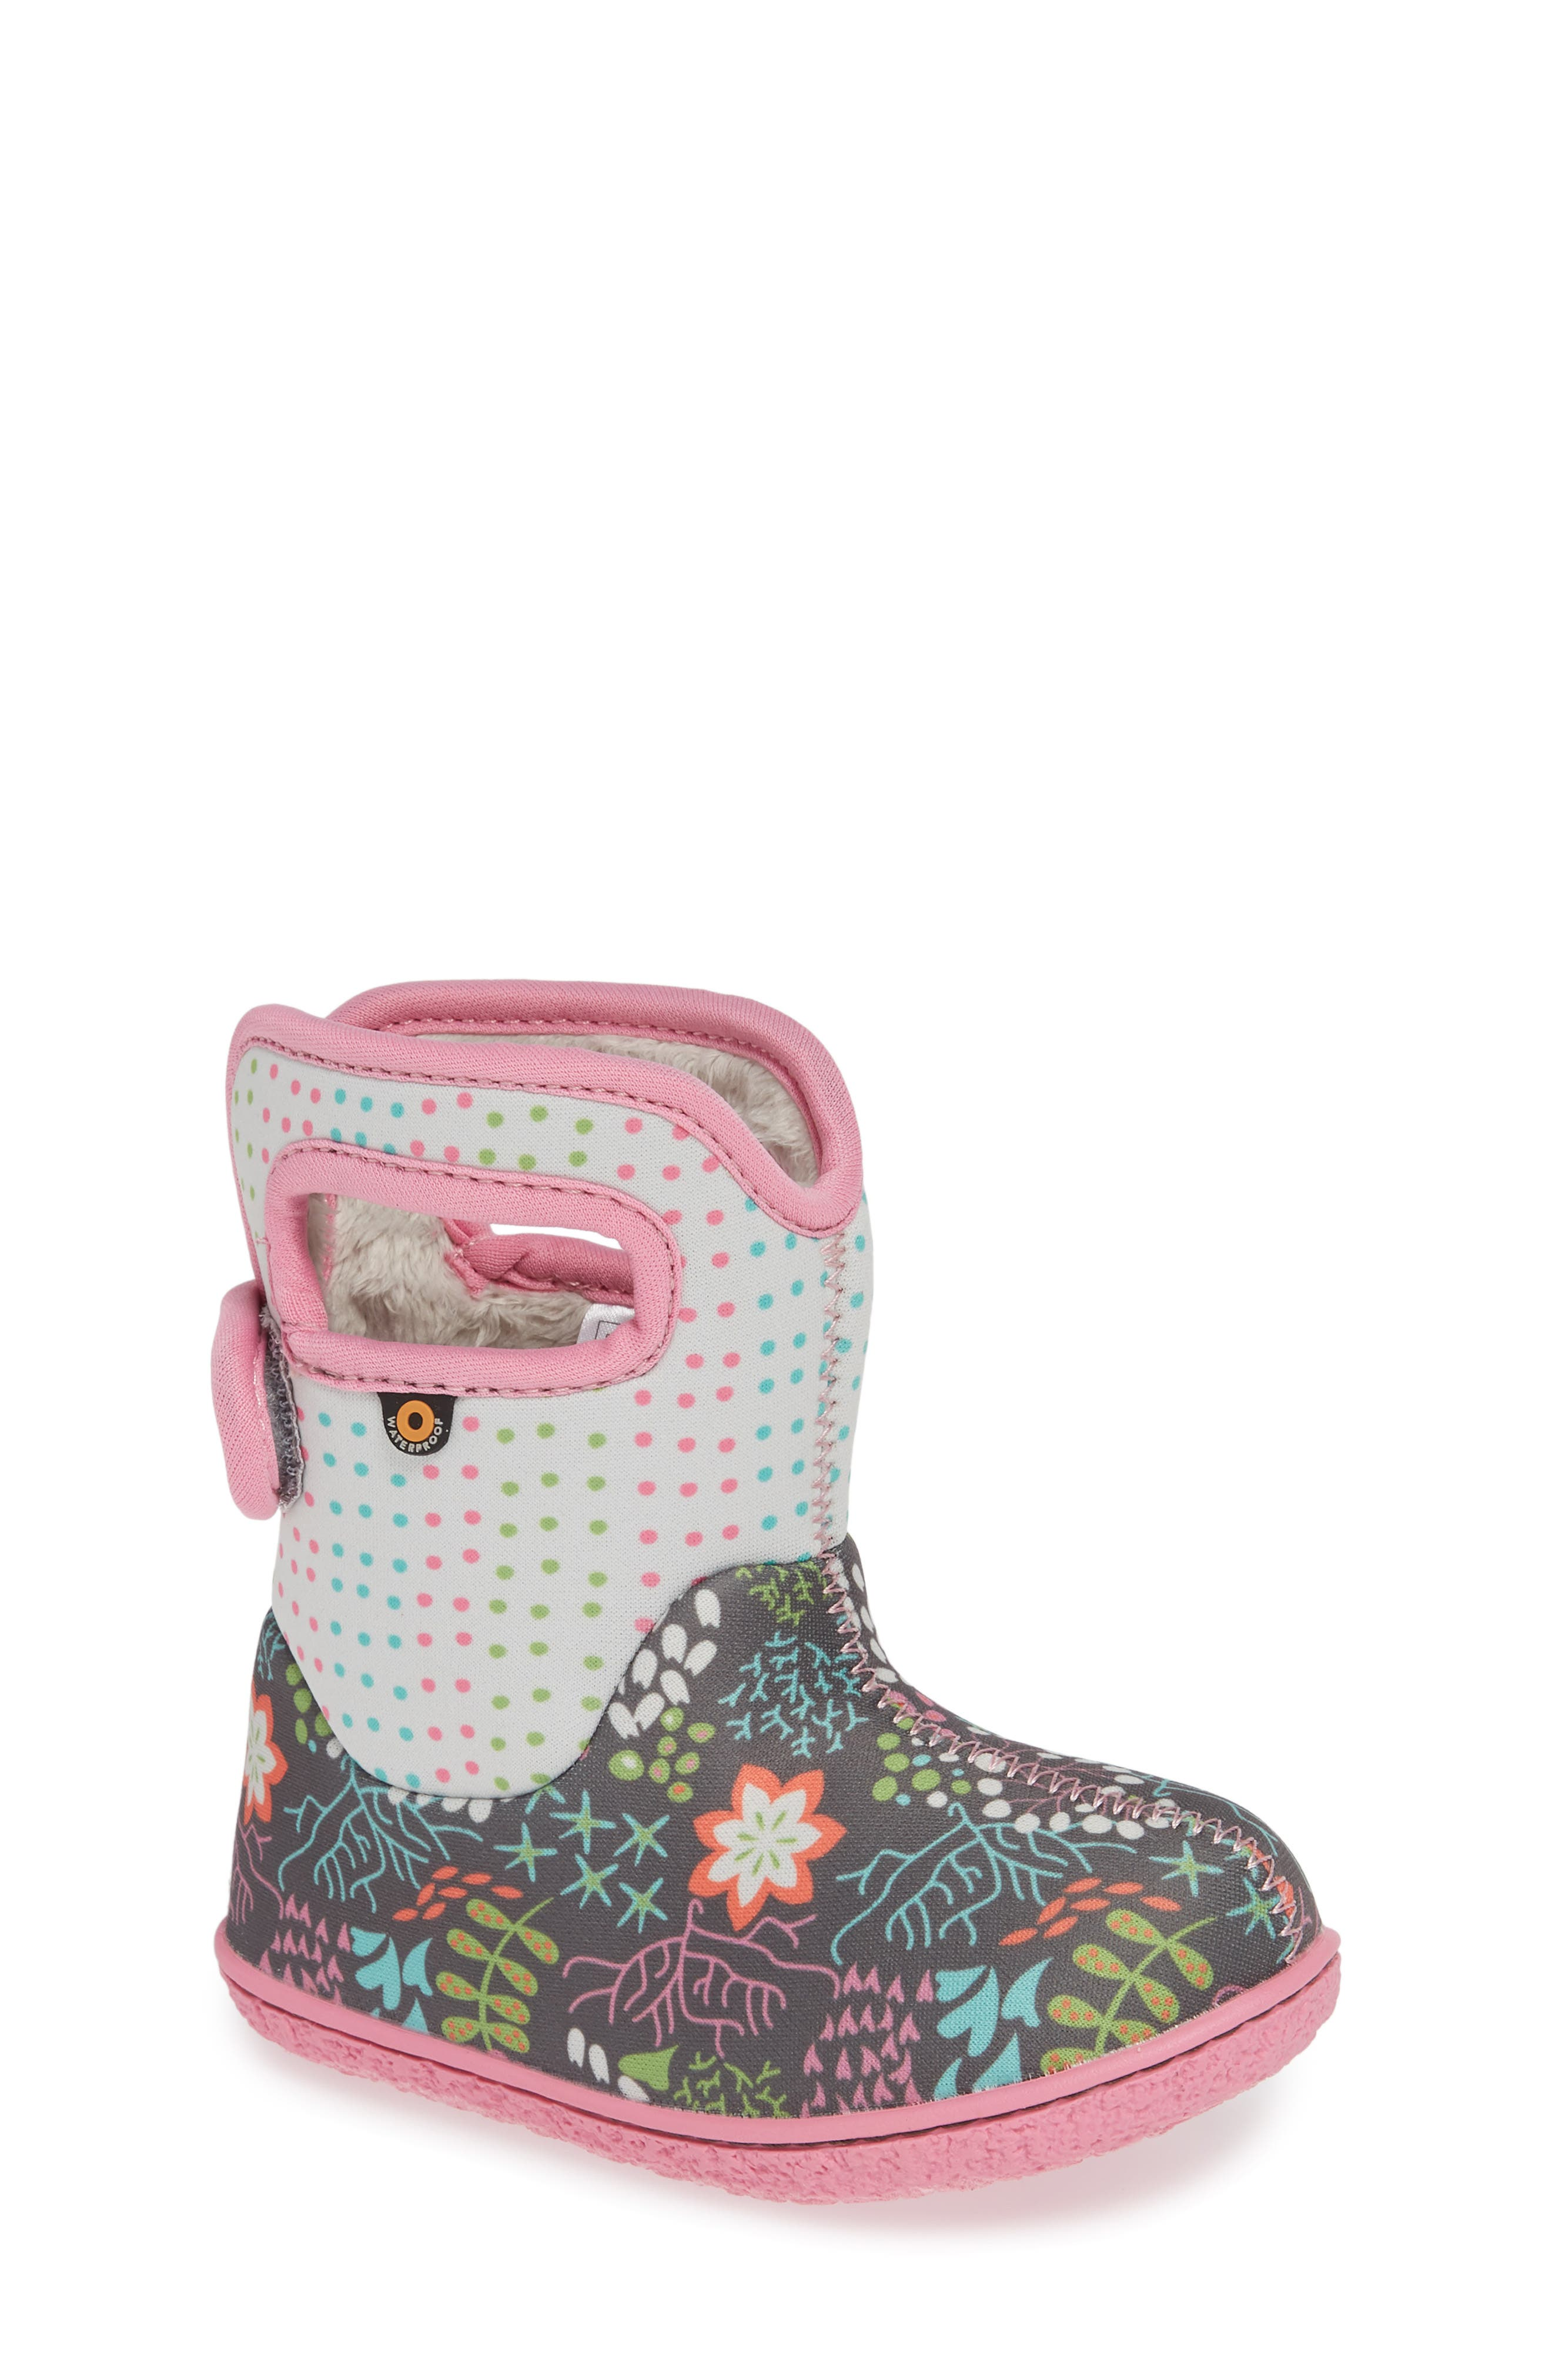 BOGS Baby Bogs New Flower Dot Waterproof Boot, Main, color, 062